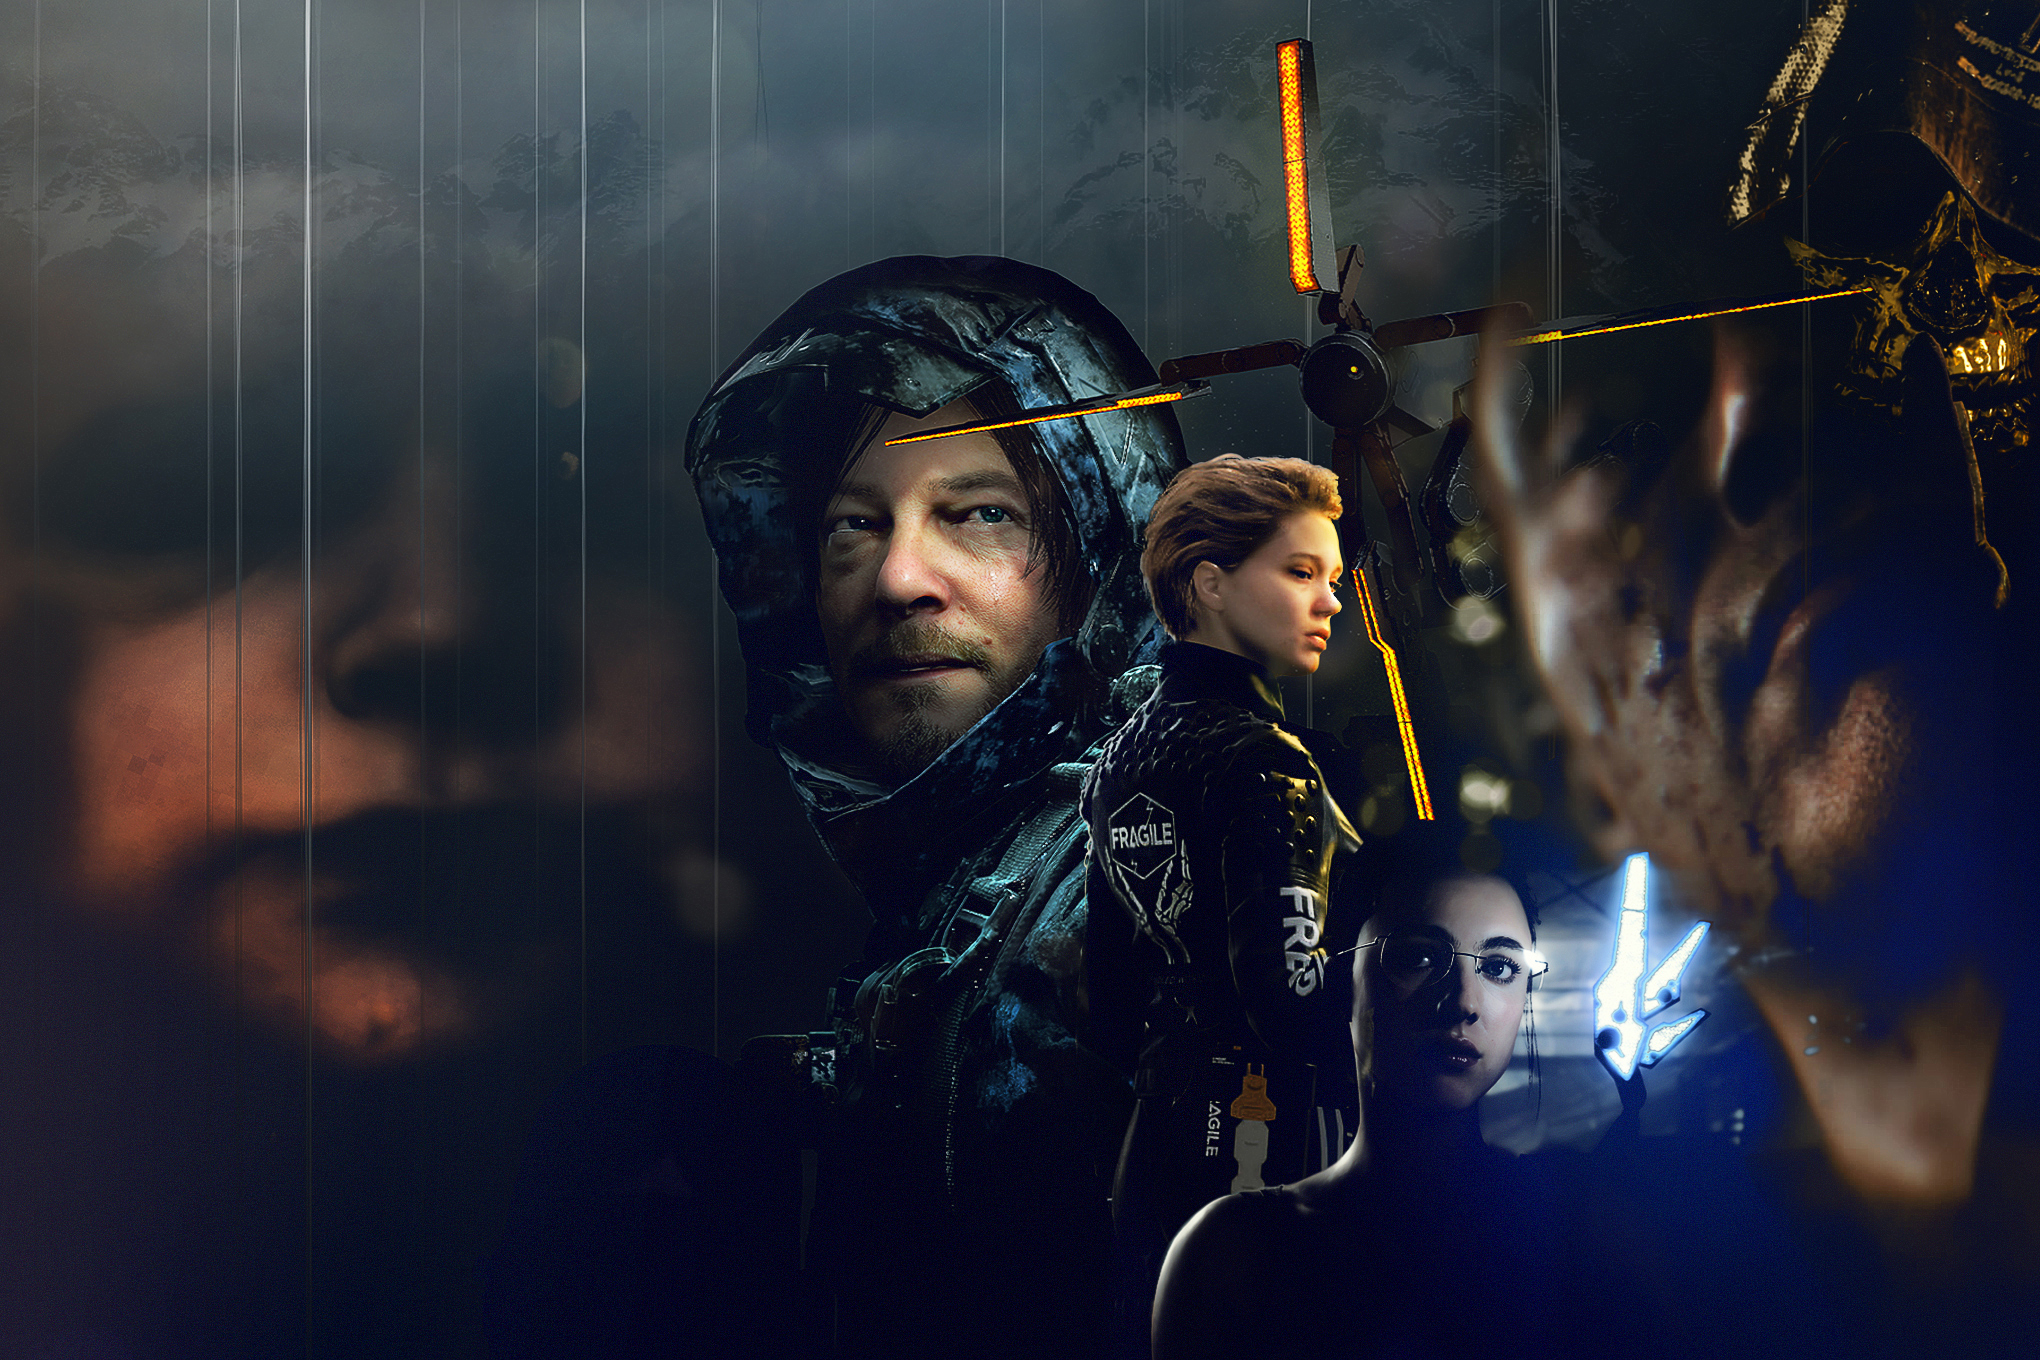 Collage illustration featuring characters from the Death Stranding video game